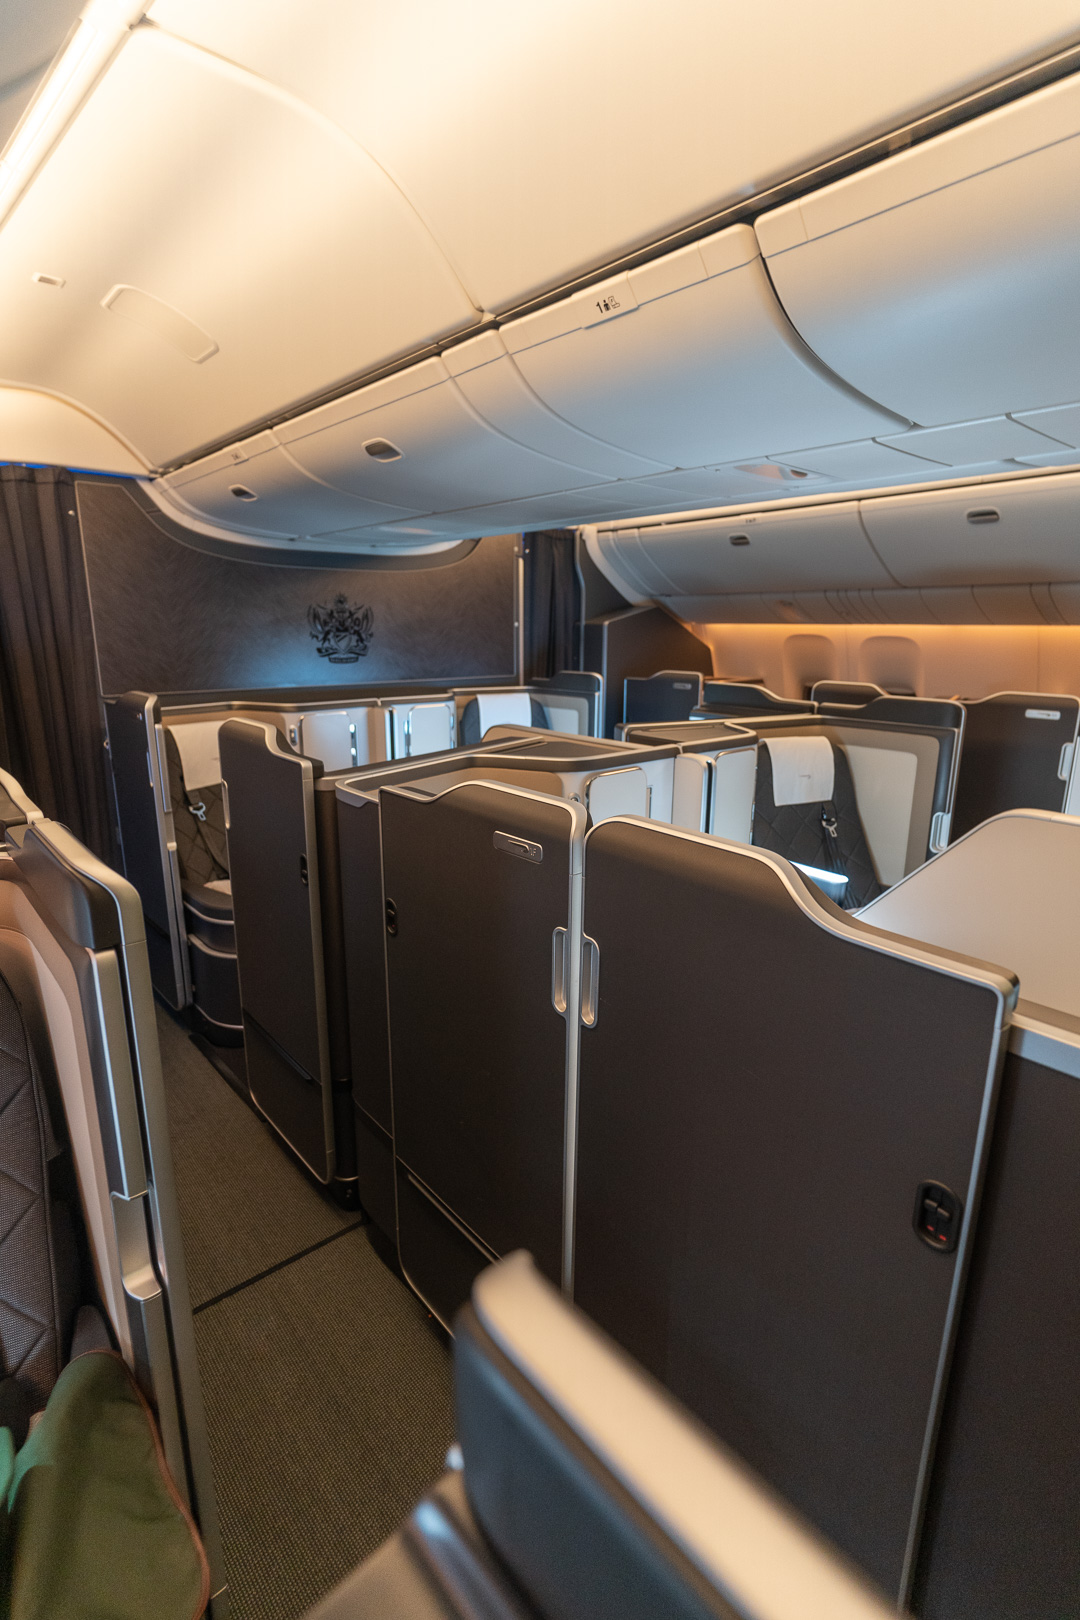 BA 77WN F 47 - REVIEW - British Airways : First Class Suites - B777 - London (LHR) to Malé (MLE) - [COVID-era]